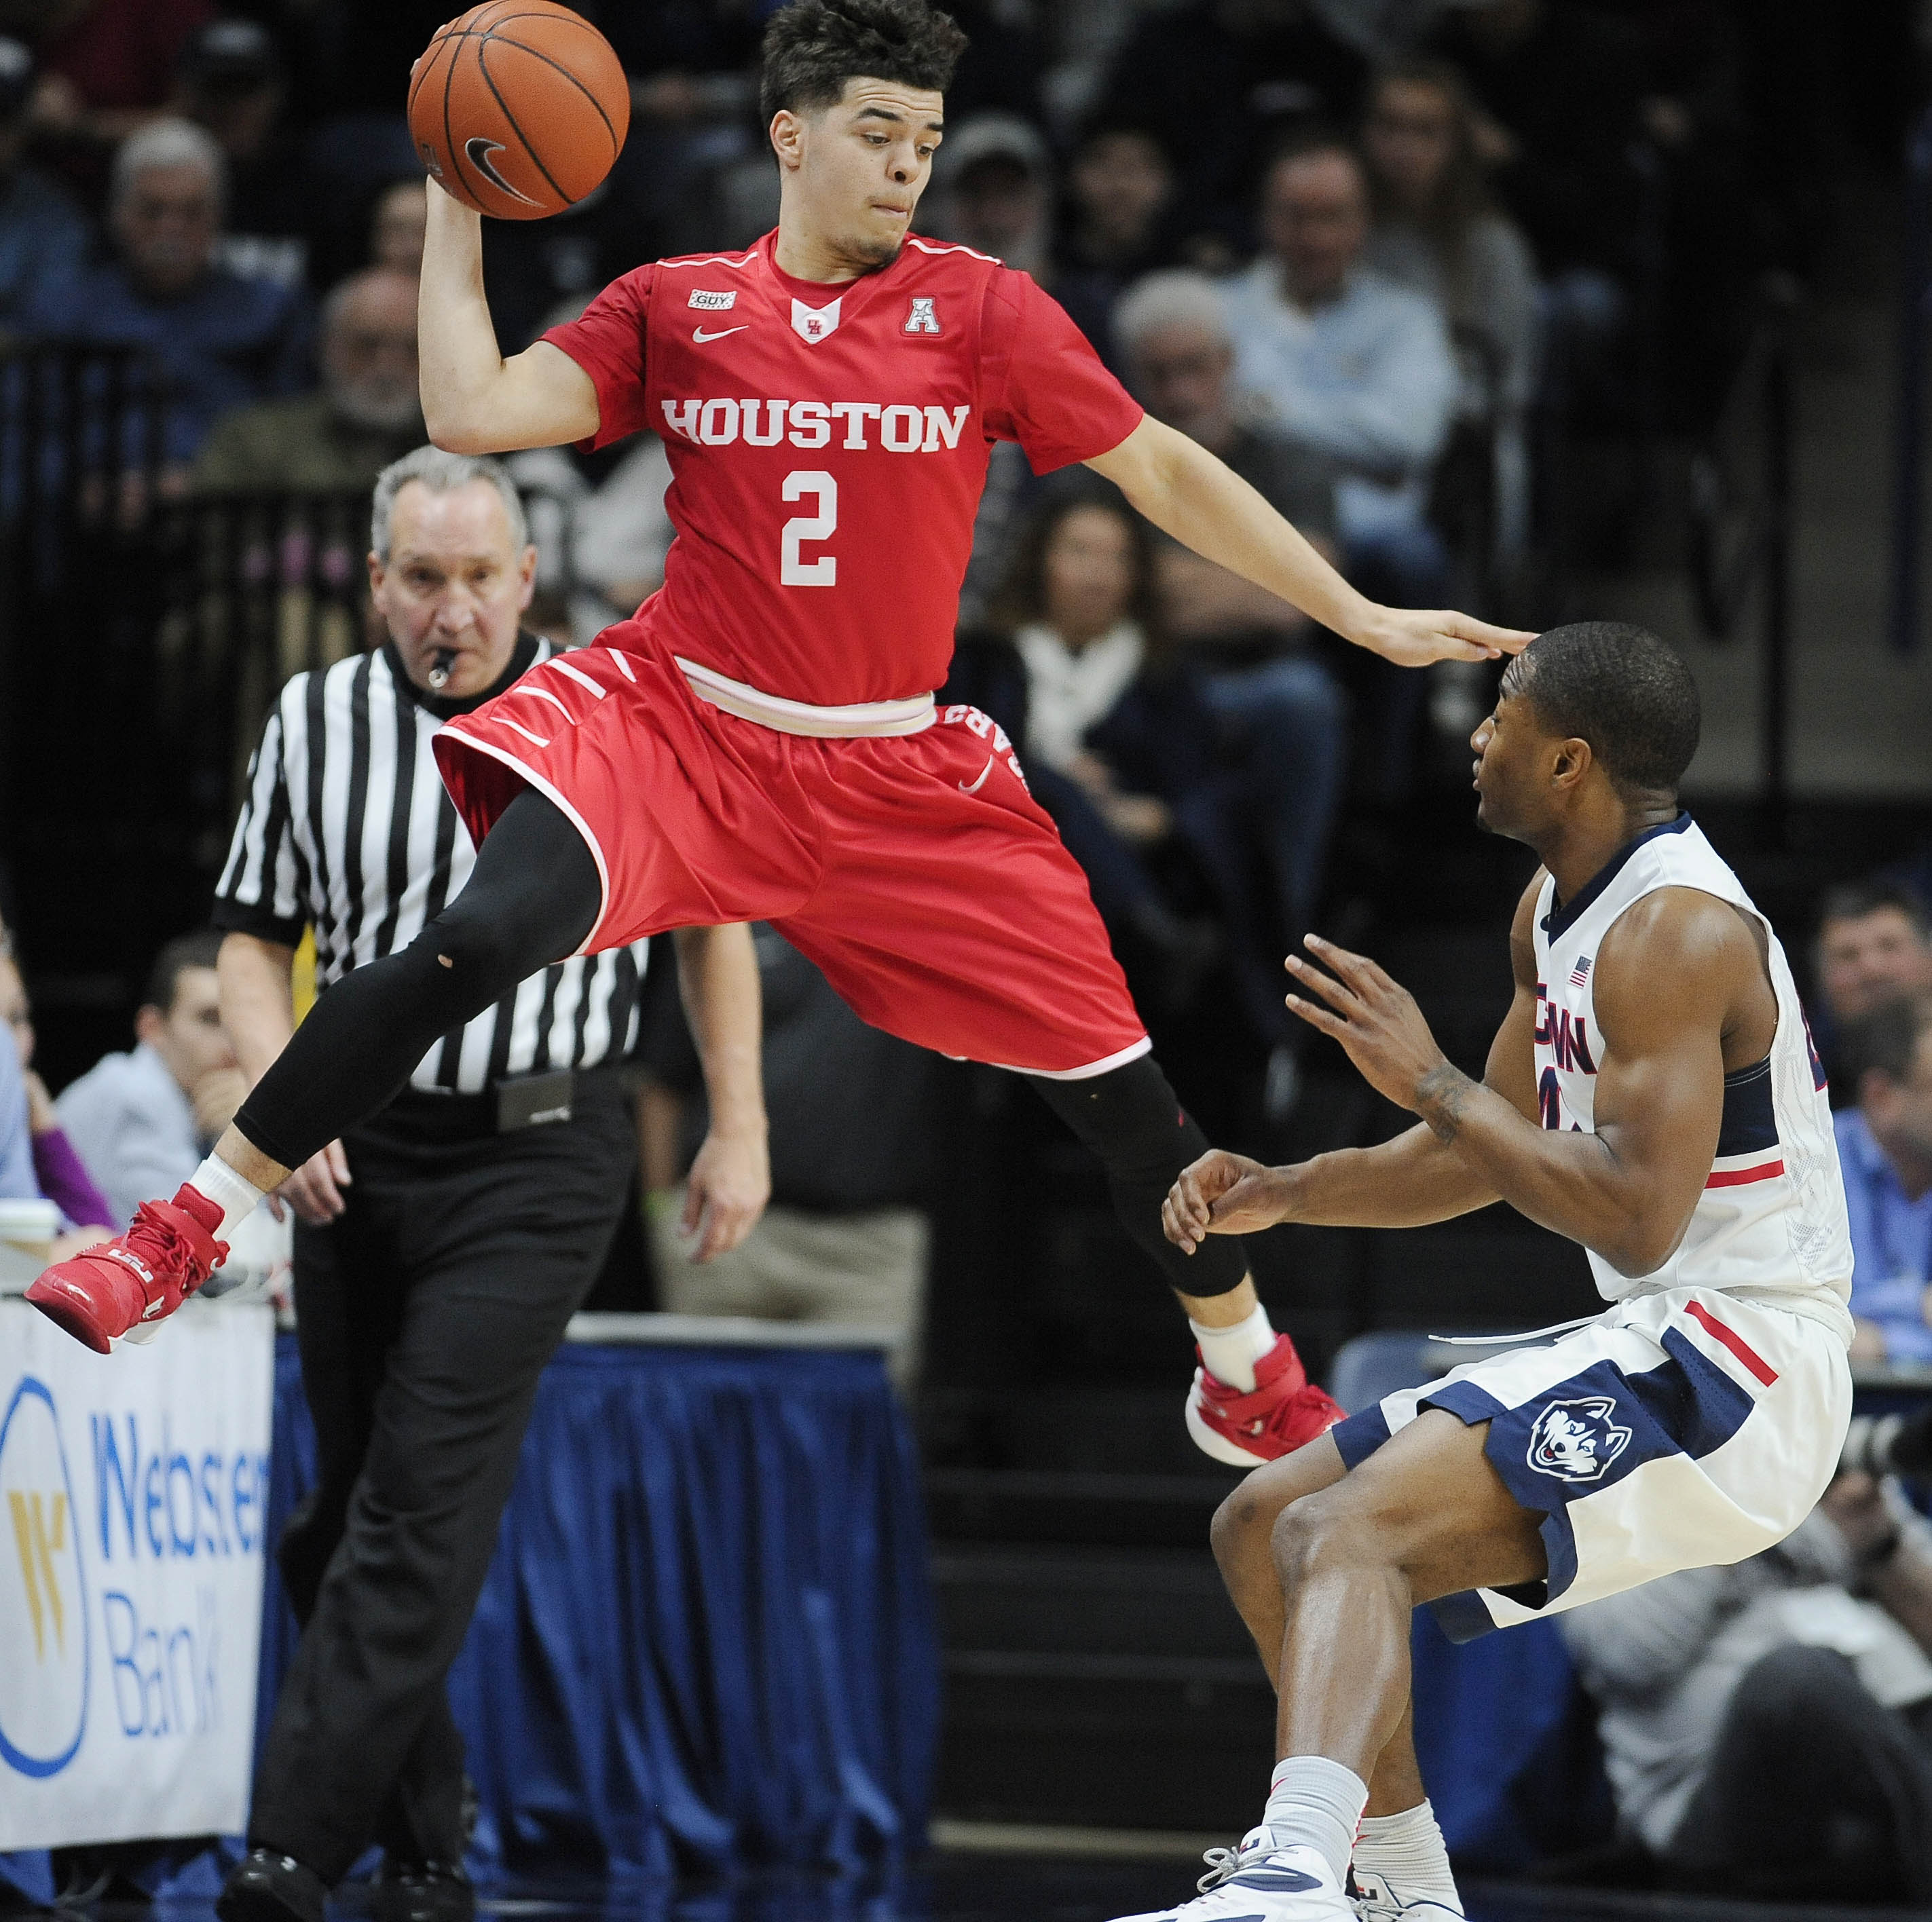 Houston's Rob Gray, Jr., left, looks to pass around Connecticut's Rodney Purvis, right, in the first half of an NCAA college basketball game, Sunday, Feb. 28, 2016, in Storrs, Conn. (AP Photo/Jessica Hill)